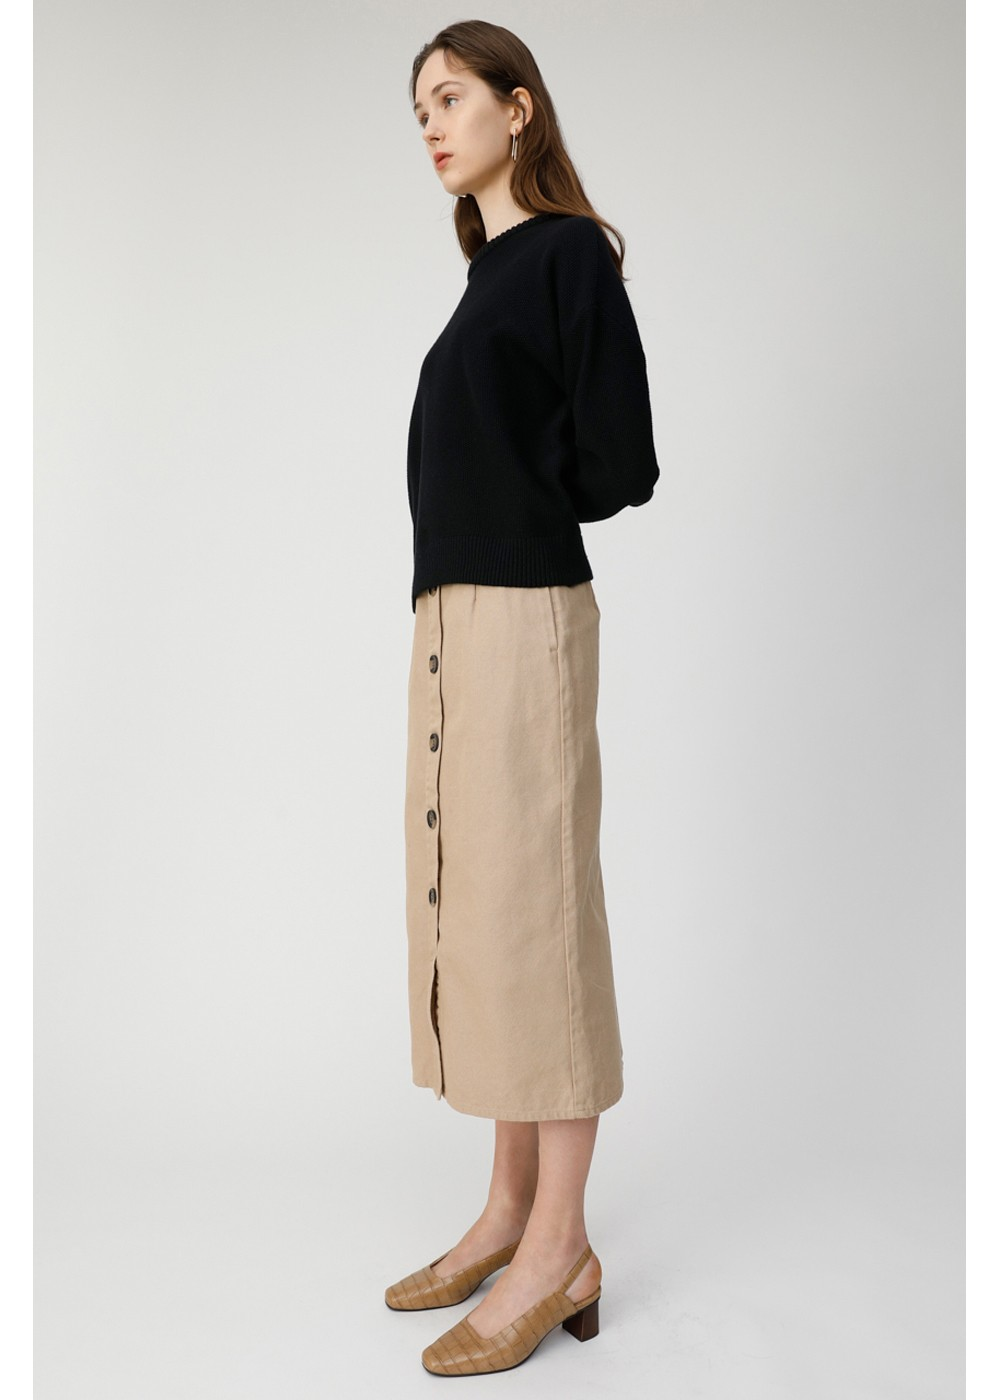 【最大70%OFF】FRONT BUTTON NARROW SKIRT|BEG|膝丈スカート|MOUSSY